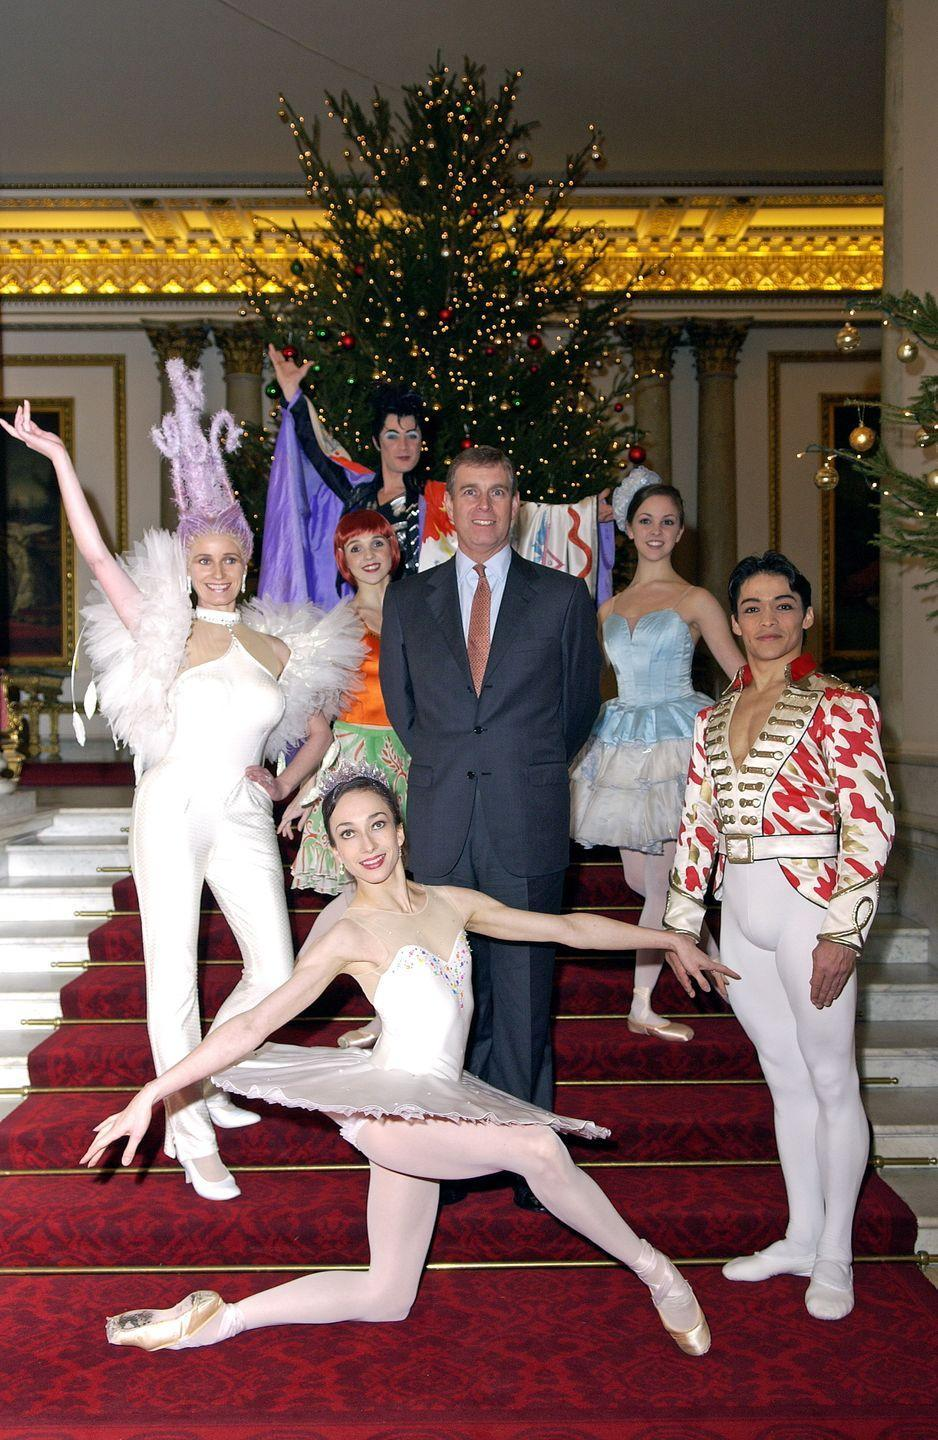 <p>At Buckingham Palace, Prince Andrew poses with dancers from the English National Ballet.</p>